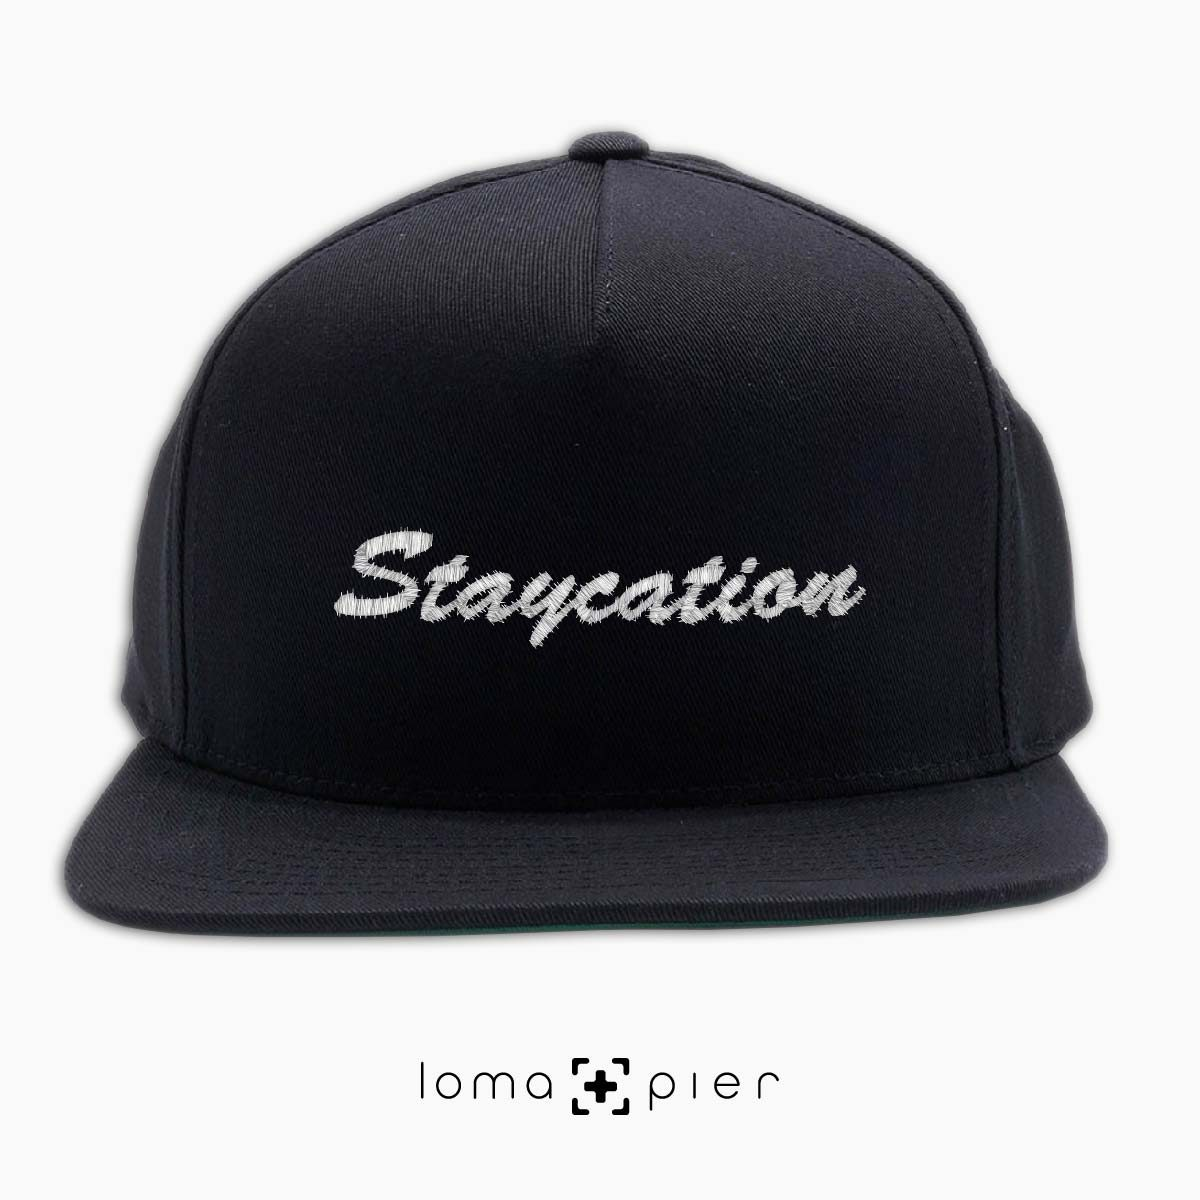 STAYCATION introvert saying embroidered on a black classic snapback hat with white thread by loma+pier hat store